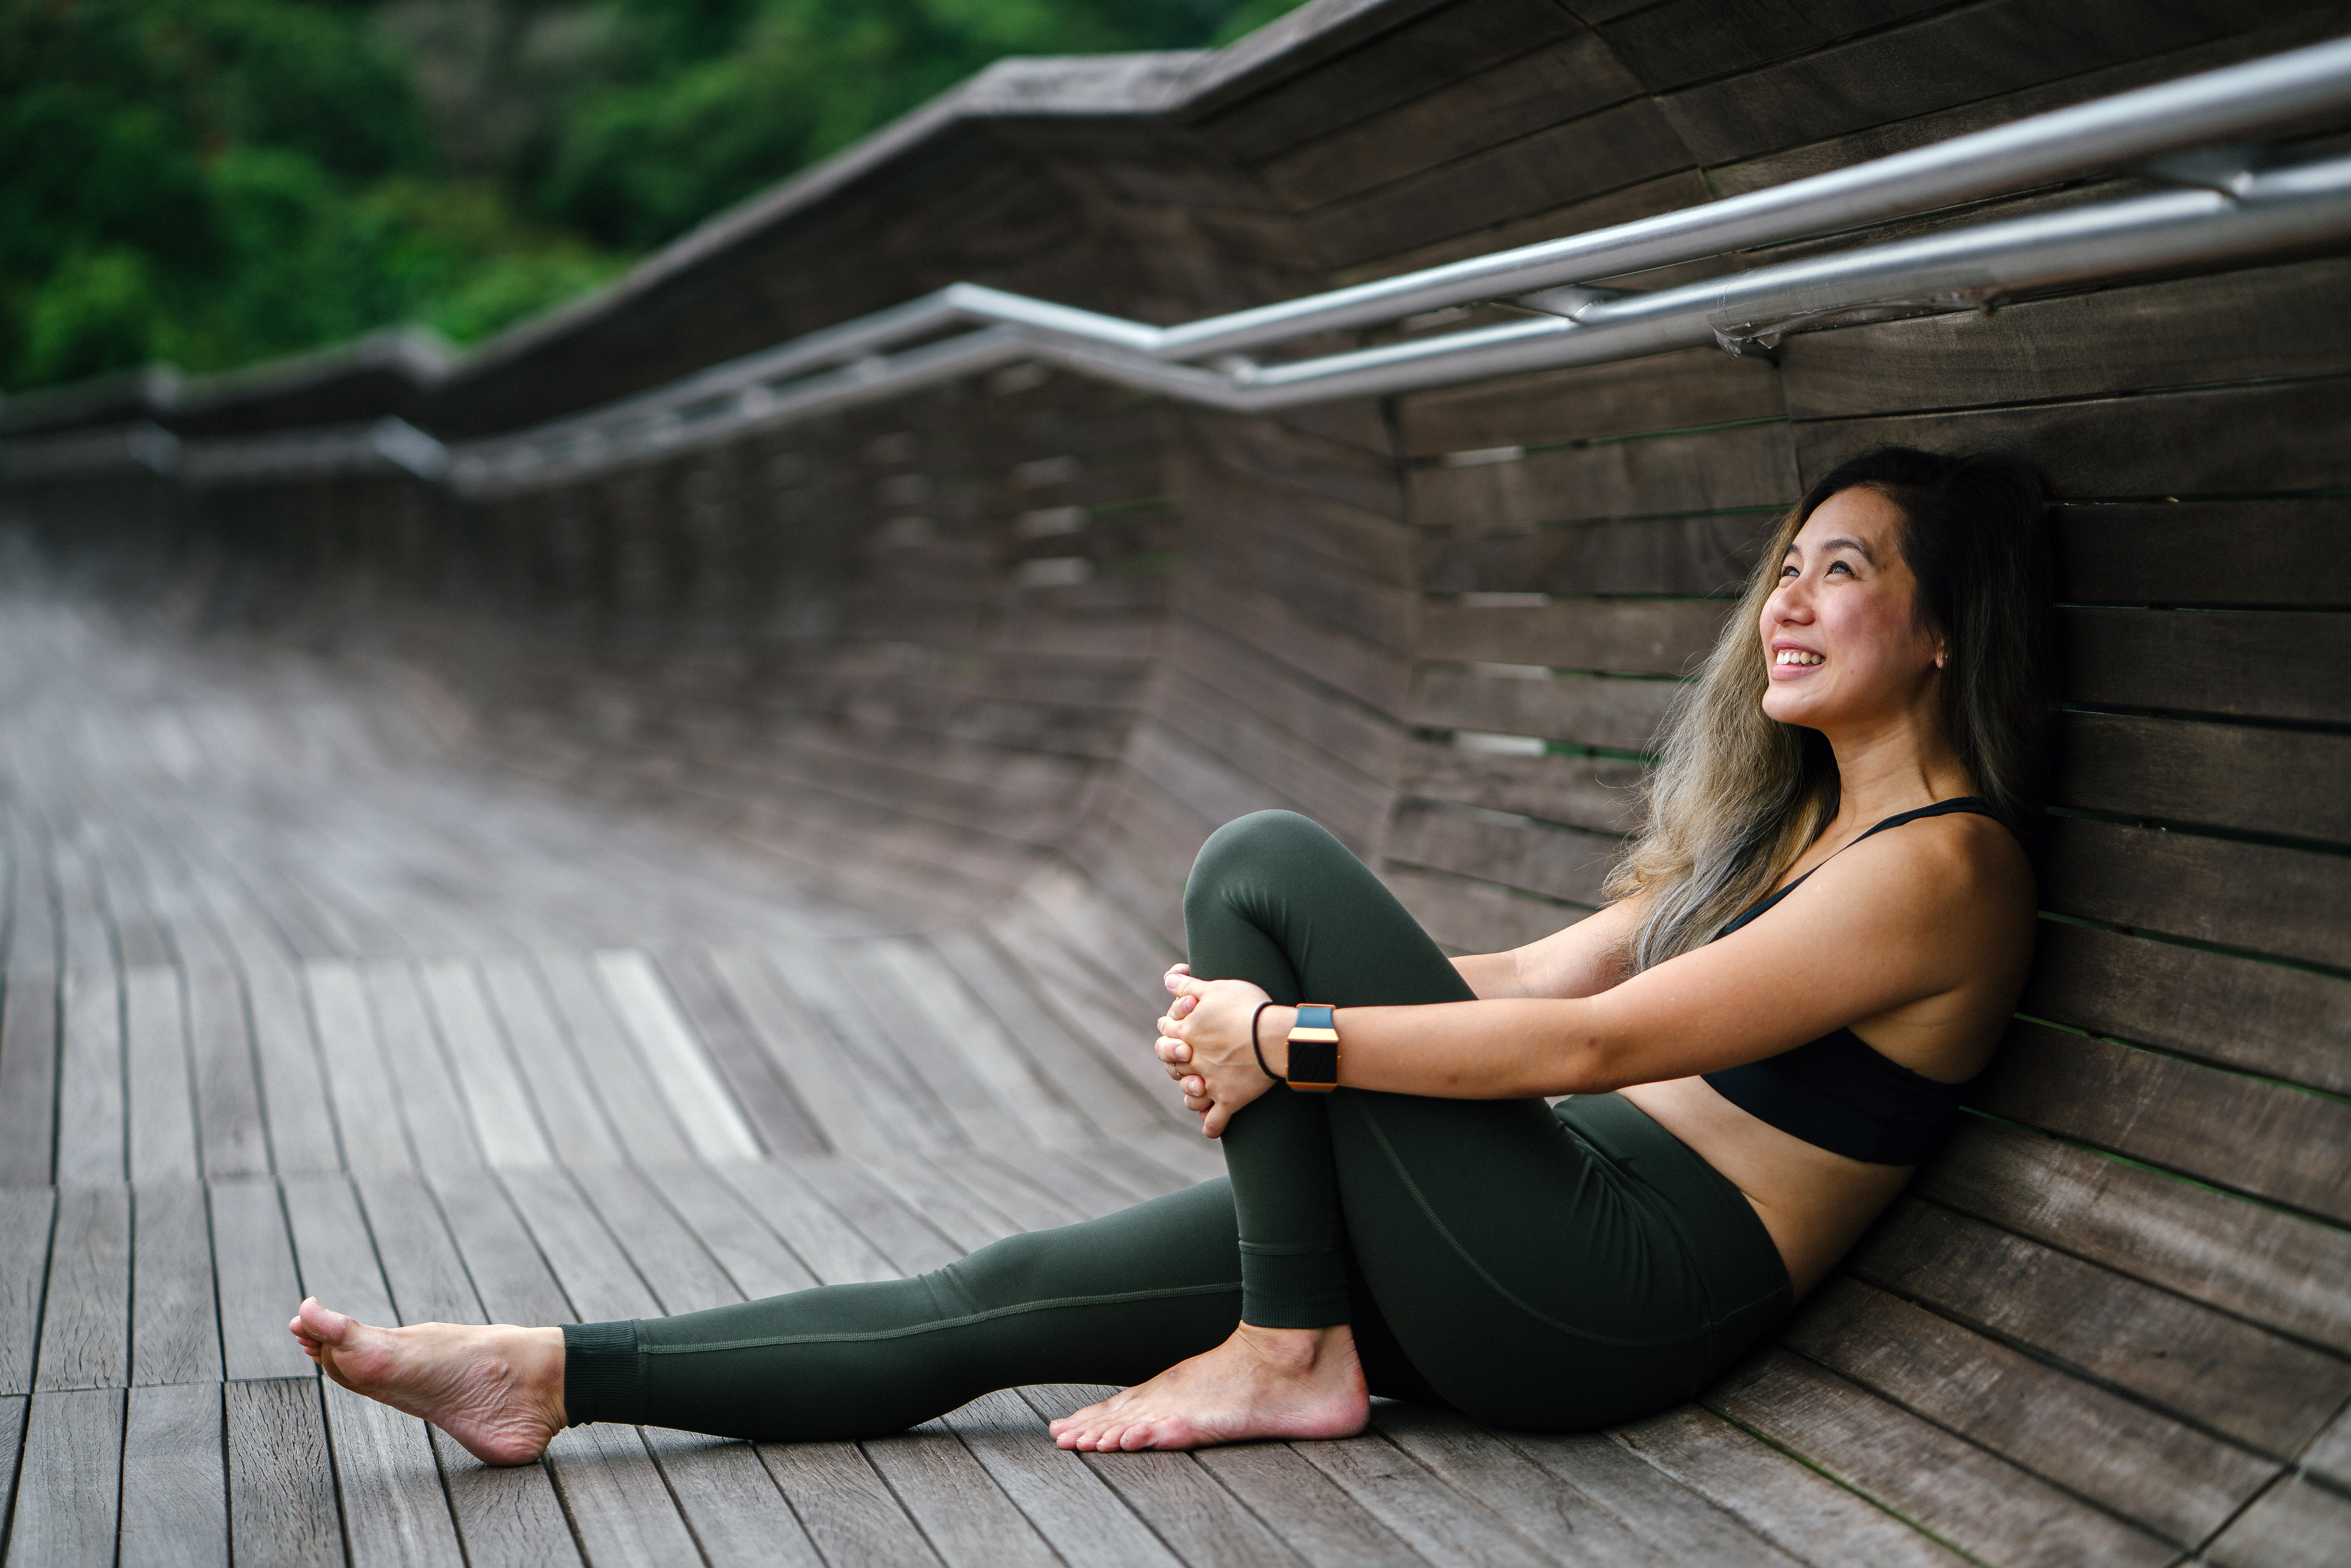 Photo of Smiling Woman Woman in Black Sports Bra and Black Leggings